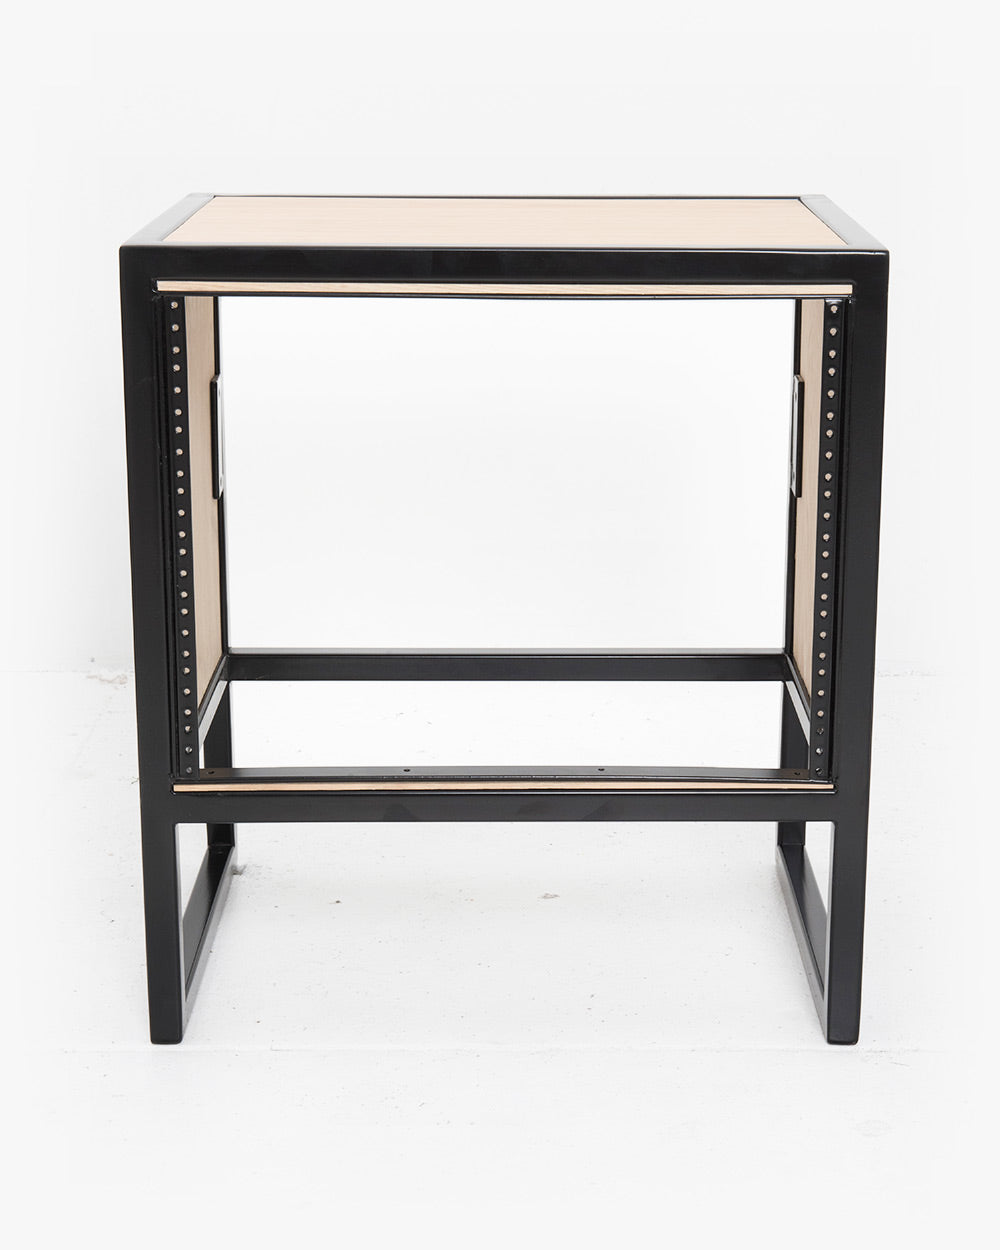 8U Studio Rack (Oak / Black)